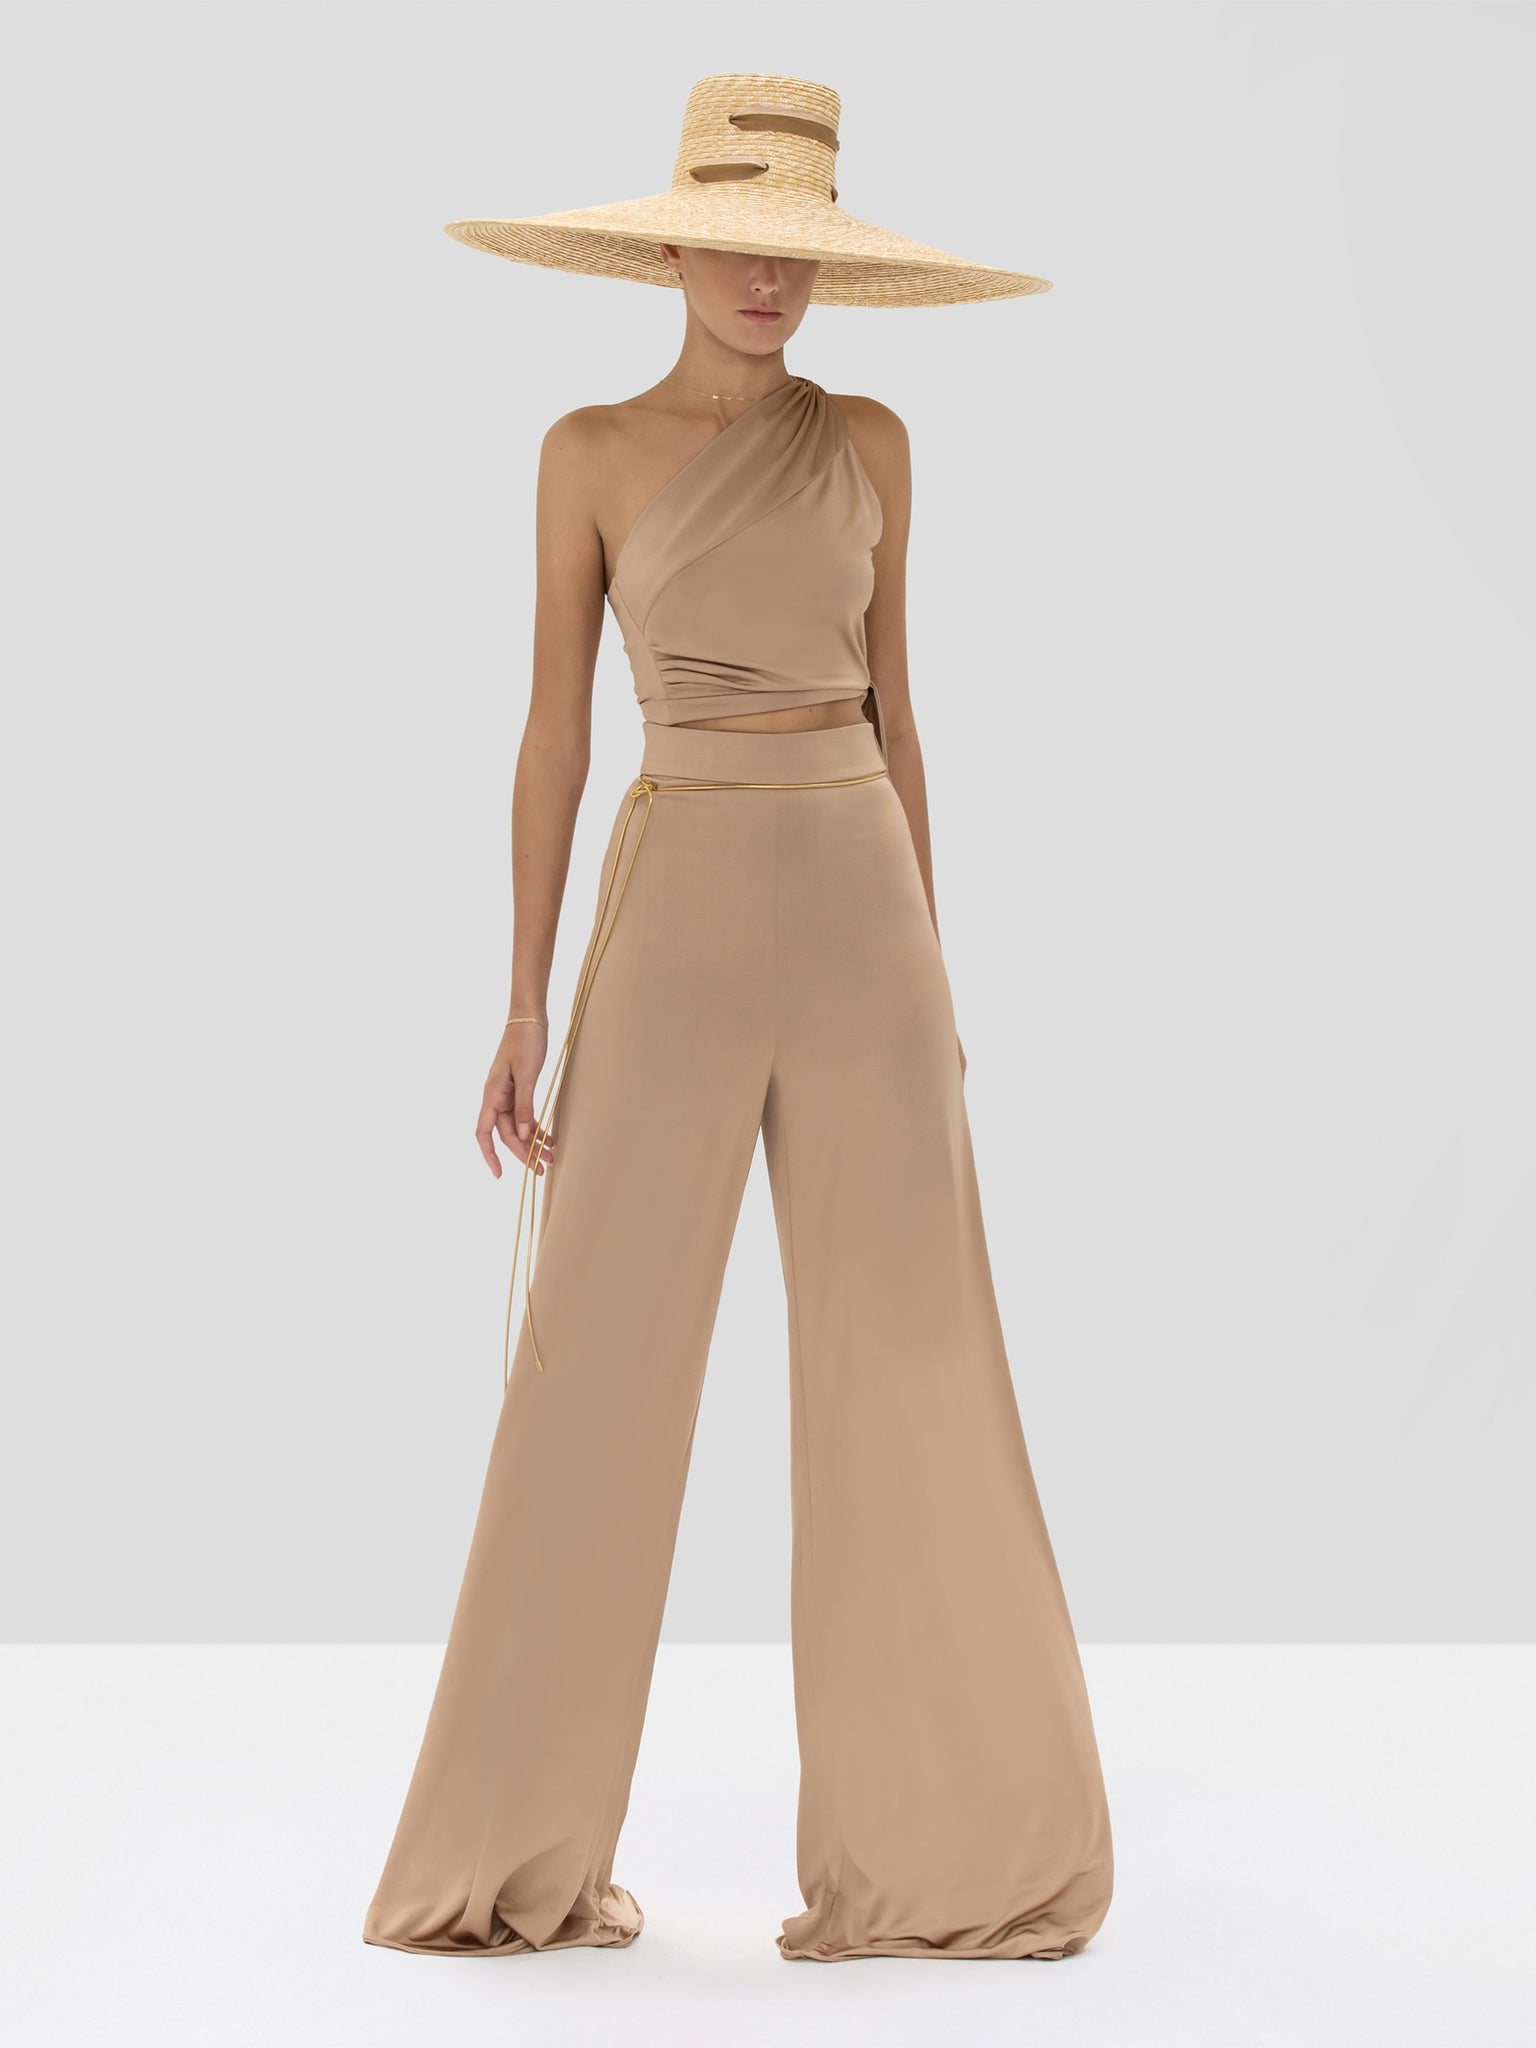 Alexis Camilo Pant and Gwen Top in Tan from the Spring Summer 2020 Collection